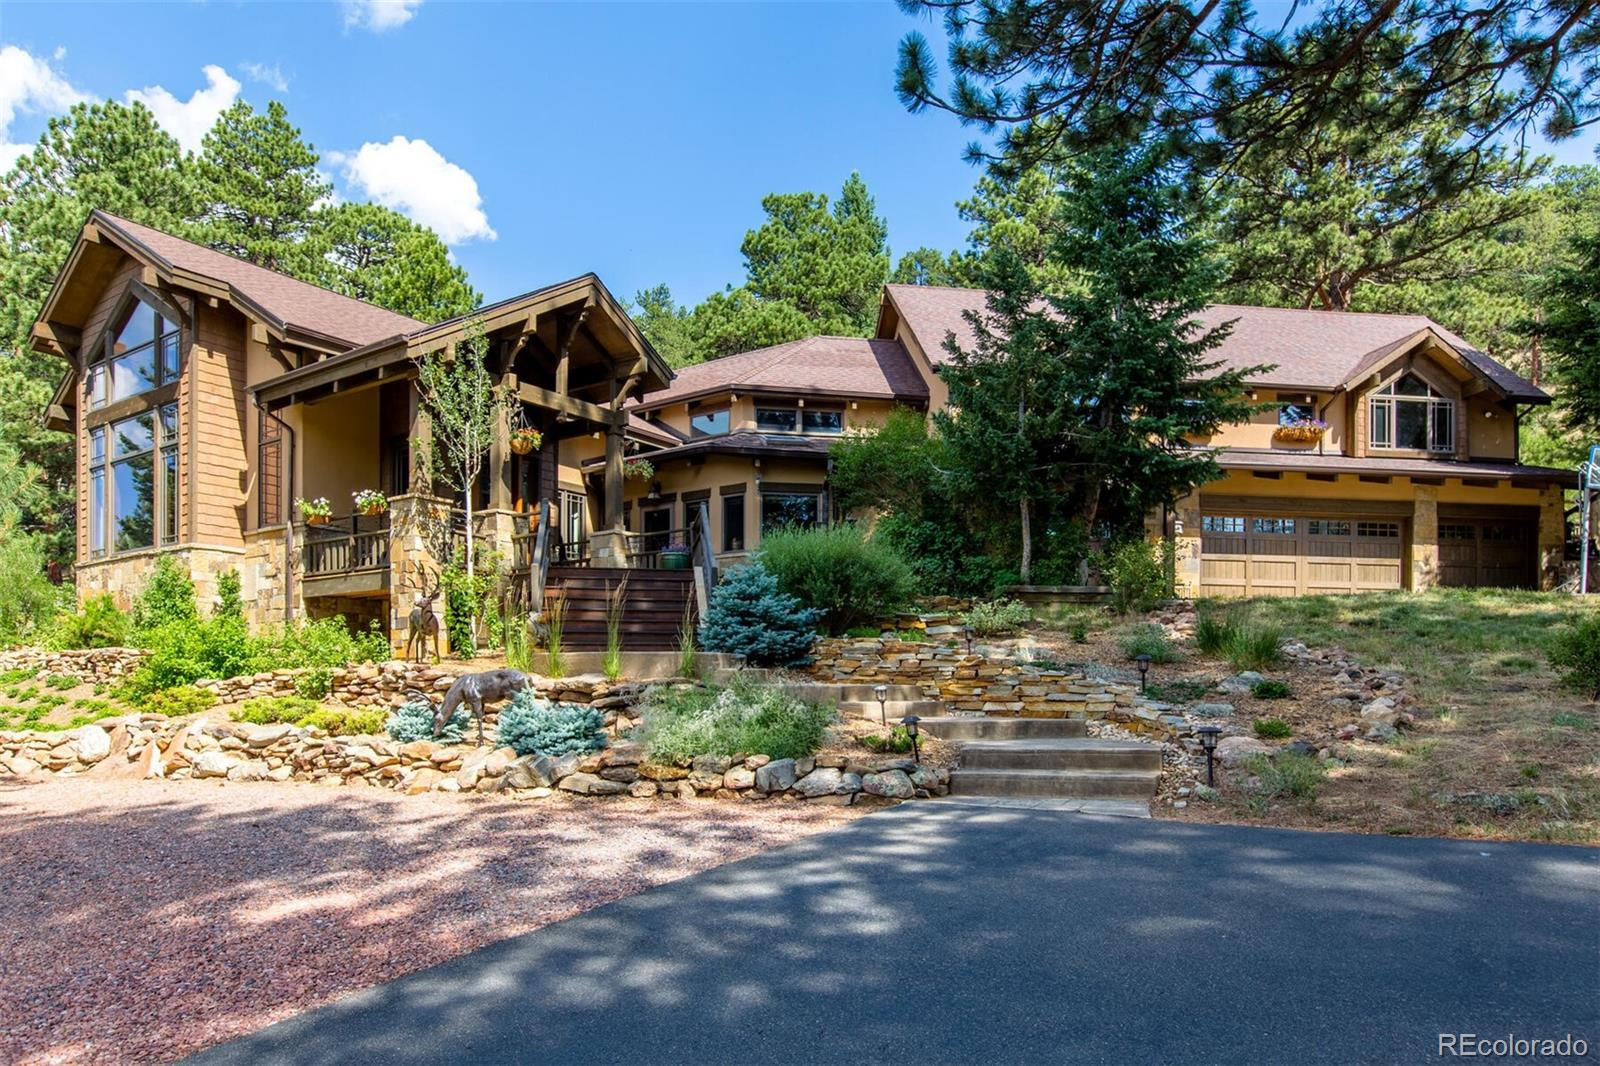 Renovated arts & Crafts style home within Evergreen's most picturesque valley makes you feel so far away, but is  just 7 minutes to Bergen Park or I-70.  Supremely private south-facing 12.4 acre setting is home to massive ponderosas, stands of aspen, bobcats & bugling elk. Mtn, views are framed by 2-story great room windows, so.-facing naturally lit bedrooms & beveled glass doors. Gentle sunny circular driveway leads to stucco/stone exterior enhanced by architectural elements designed by TKP Architects & created as part of a 2012 great room addition with exterior updating. Fabulous great room features a soaring tongue-n-groove ceiling, exposed beams, hickory floors, Hubbardton Forge chandeliers, custom stone wood-burning fireplace & built-ins with hidden TV.  Formal dining has lit cabinetry & slate flooring that extends into the remodeled Chef's kitchen with patio, cherry cabinets, hammered copper sink, butcher block center island, slab granite tops with built-in breakfast table, glass backsplash & top-of-the-line appliances: Viking 6-burner gas cooktop with copper hood & pot filler, full size GE Monogram refrigerator, convection oven & GE Profile speed cook microwave+warming drawer. Sky-lit sitting area has arts & crafts chandelier & built-in desk. Family room & sky-lit exercise area offer a wet bar, patio access & full bath to provide flexibility for conversion to a future main floor master. Mud room with cubbies is off the updated laundry. Double stairways to upper level. Custom wrought-iron balusters with leaf motif. Big master is finished with a beautiful stone & iron gas fireplace+ view deck, 5-piece bath with heated tumbled marble floor, multiple shower heads in walk-in shower, soak tub, slab granite vanities, big over mount sinks, glass block accents & large walk-in closet with professional organizers. Upstairs office/play room provides privacy for 3 ensuite bedrooms. Kids' den has counter study space.  Wonderful view patios include gas fireplace & firepit.